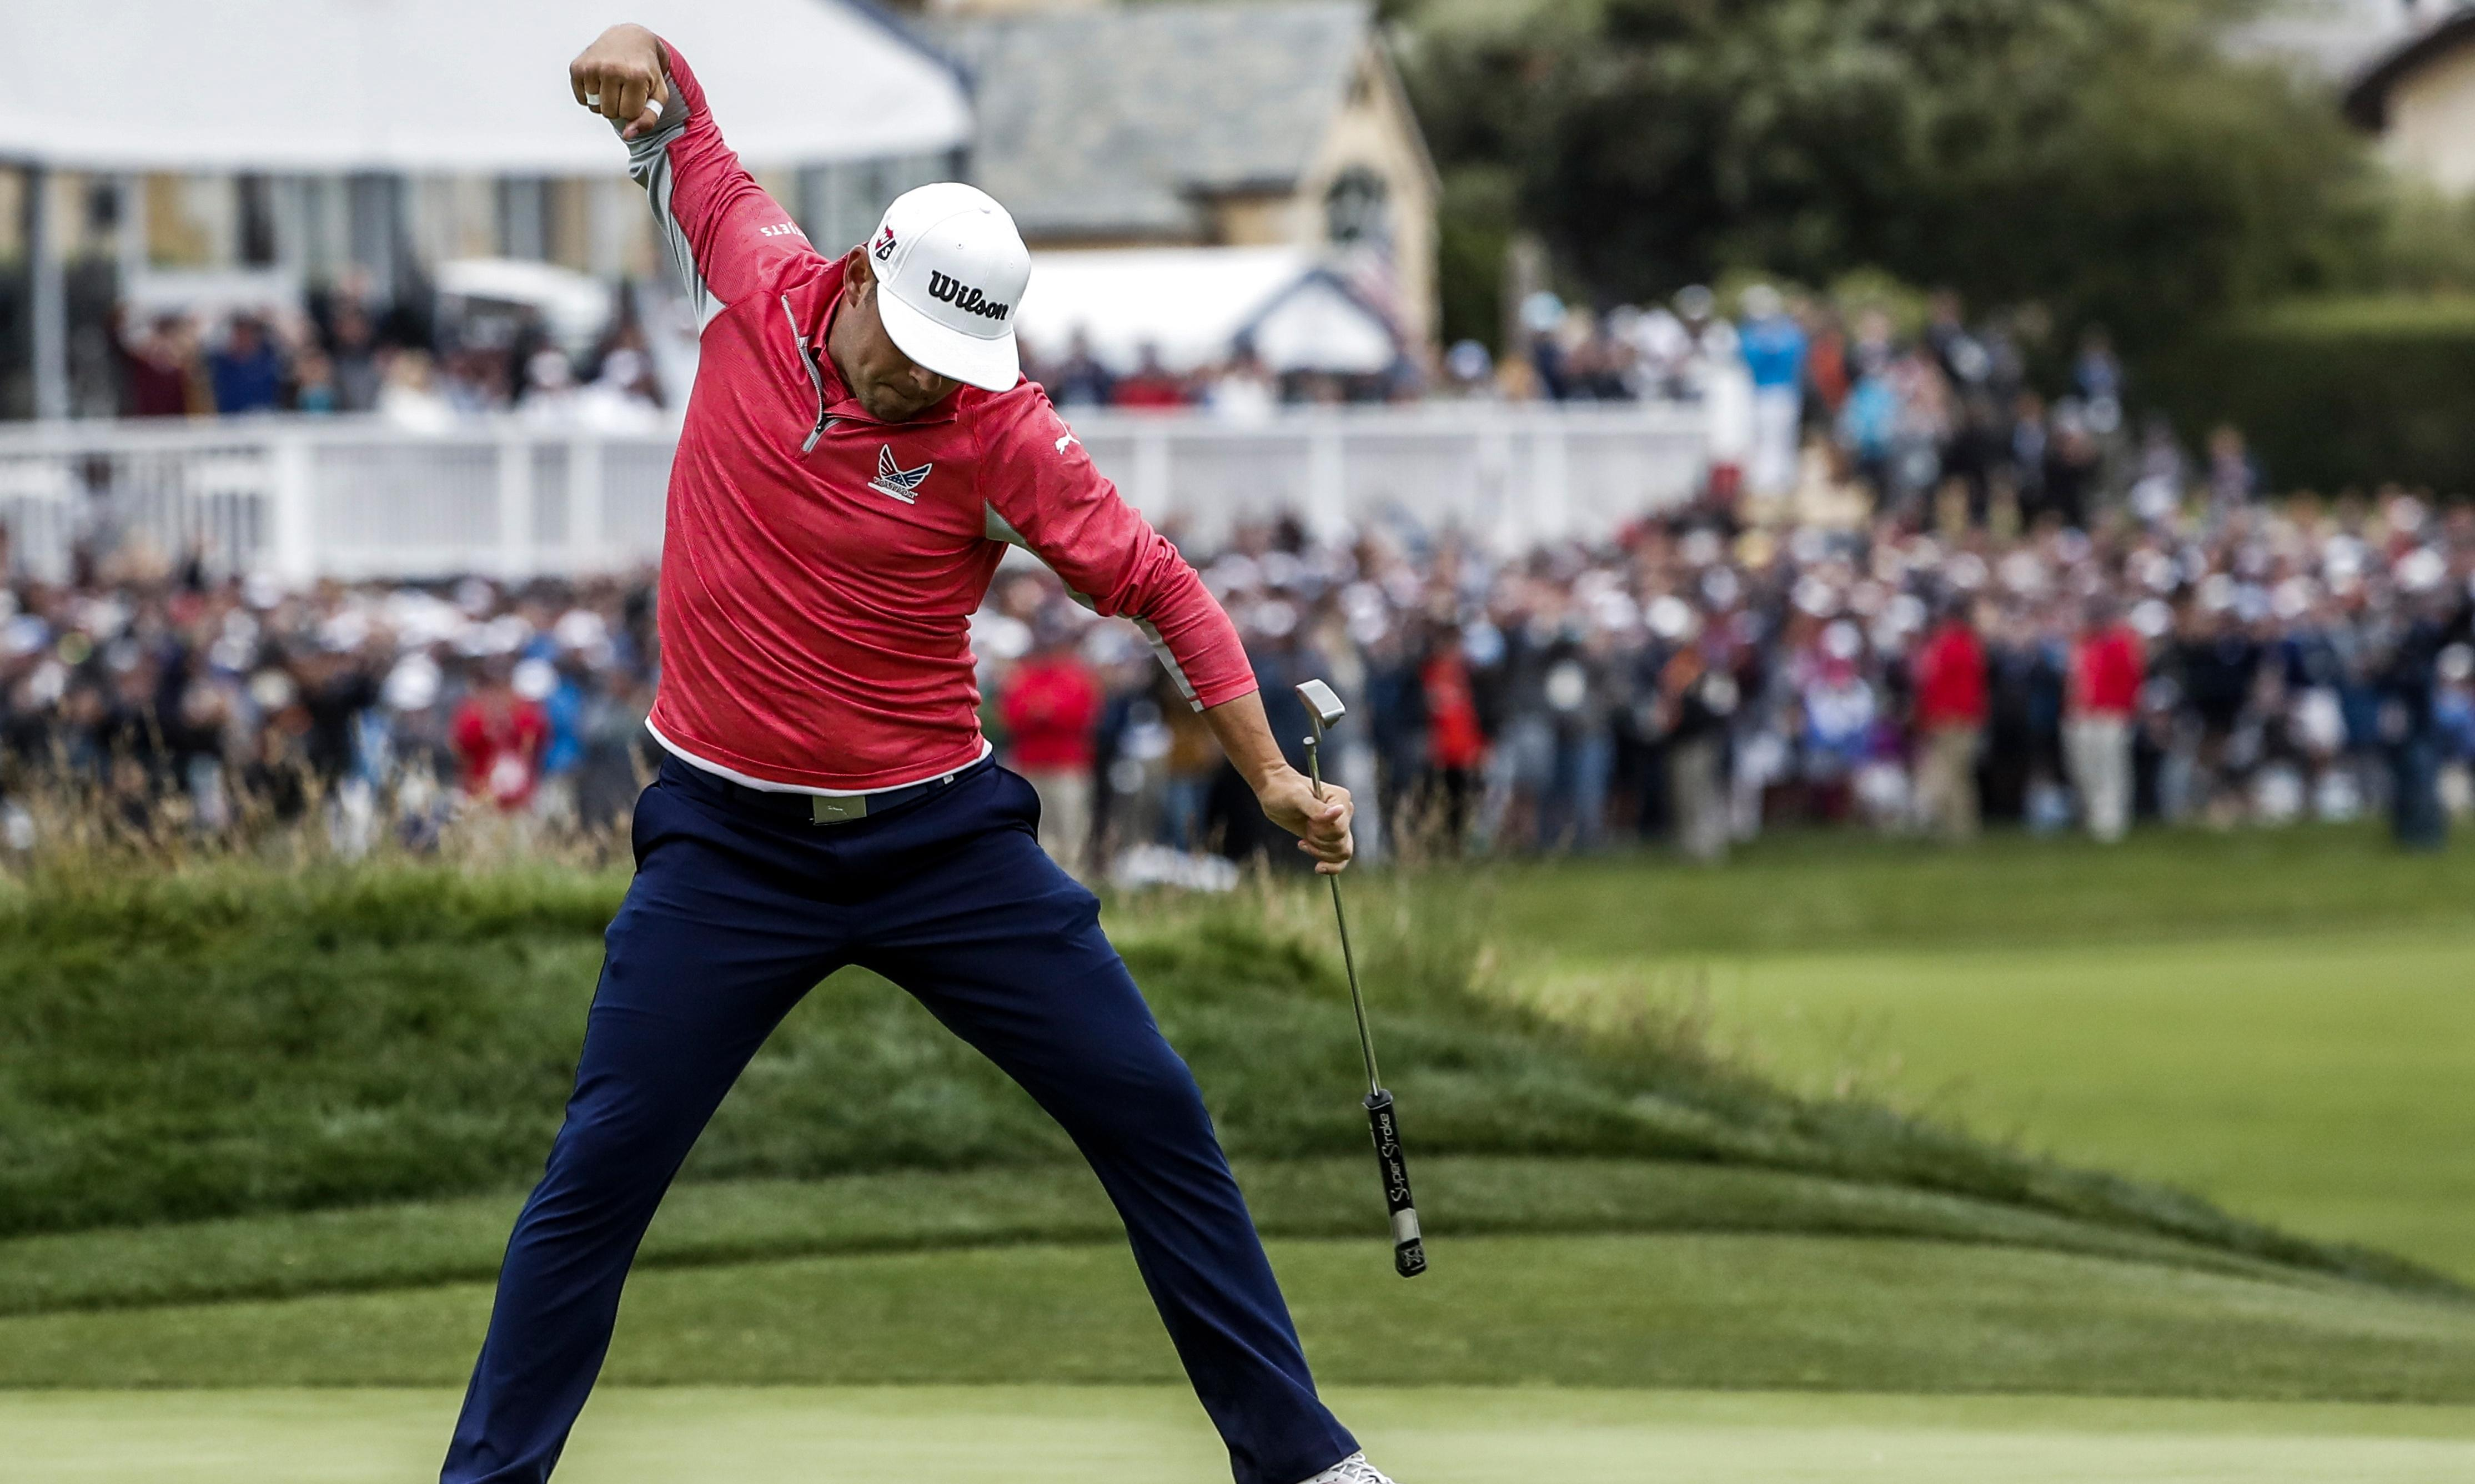 Woodland holds off Rose and Koepka to win US Open